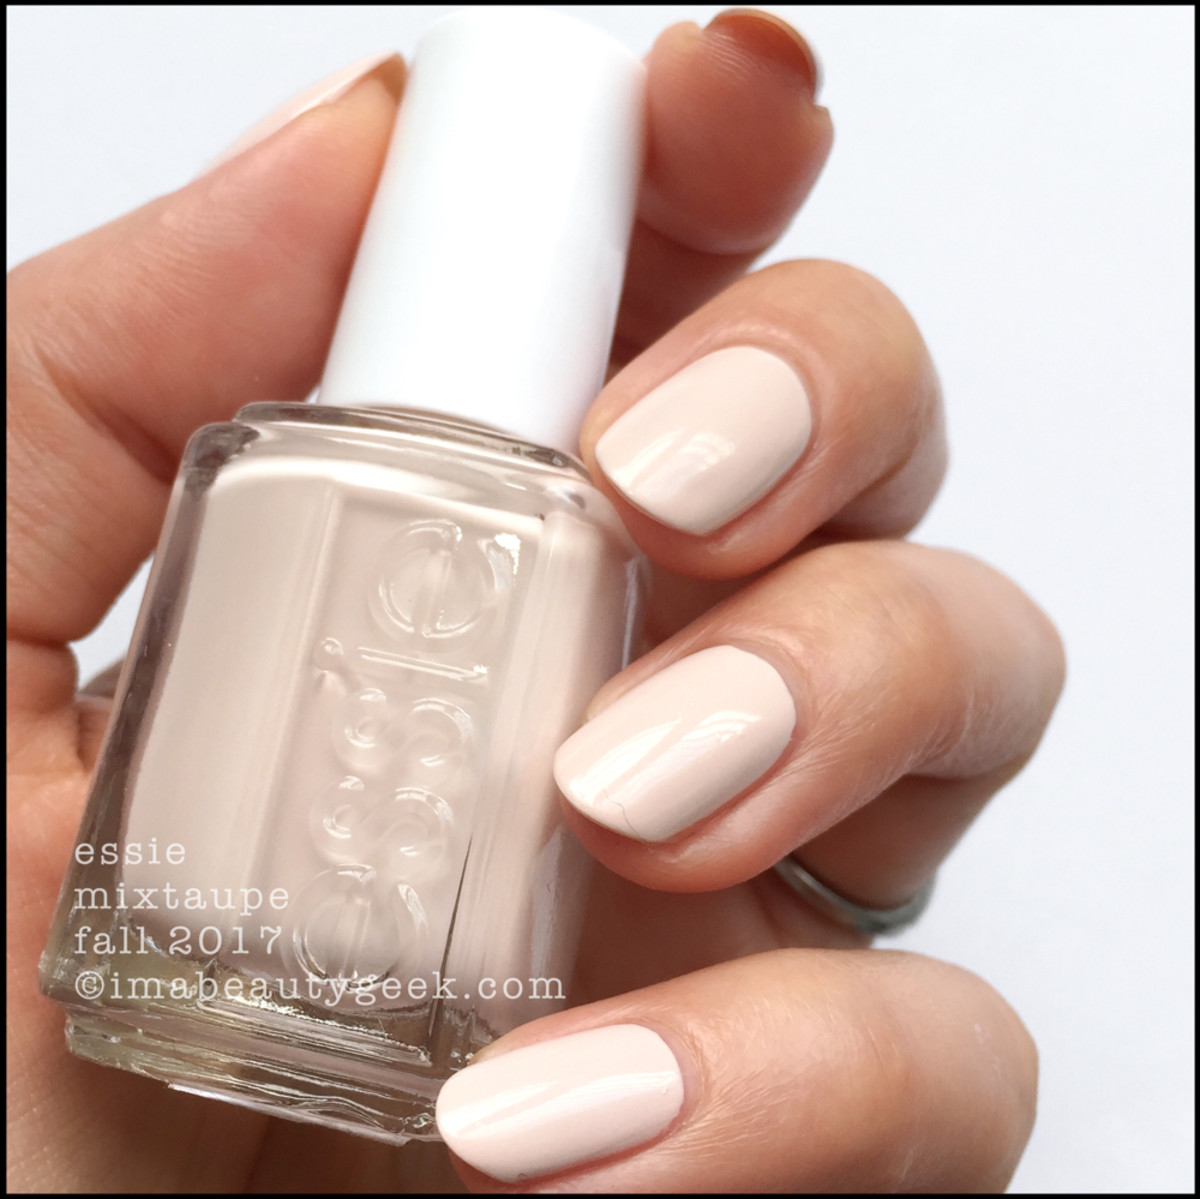 Essie Mixtaupe - Essie Fall 2017 Collection Swatches Review